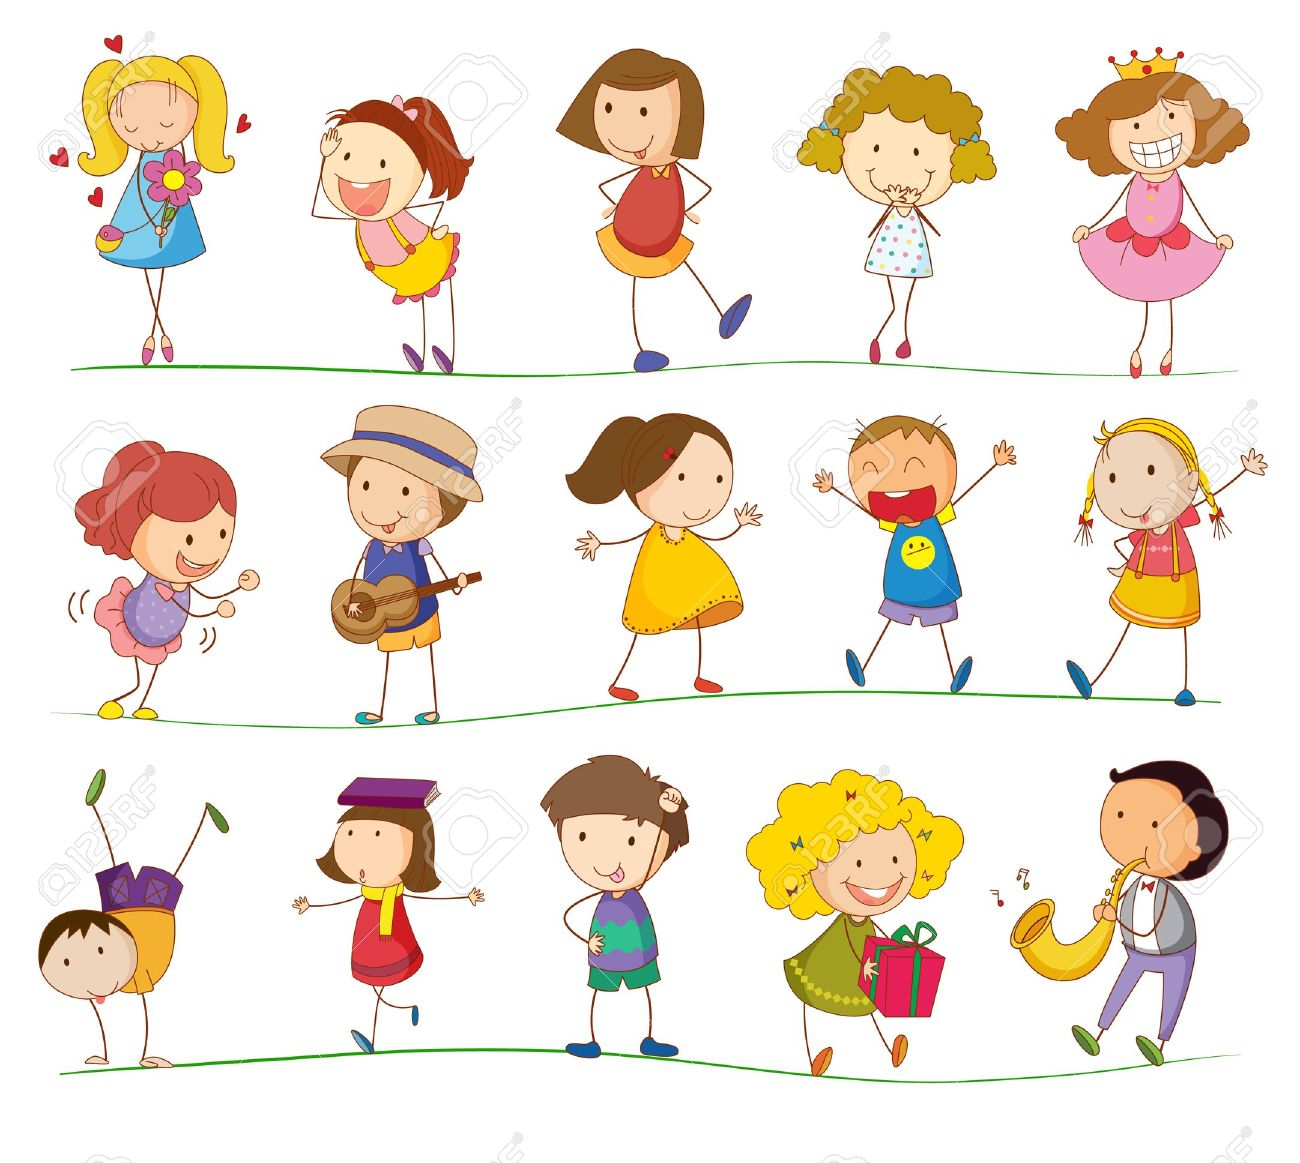 Illustration of simple kids playing Stock Vector - 13960961